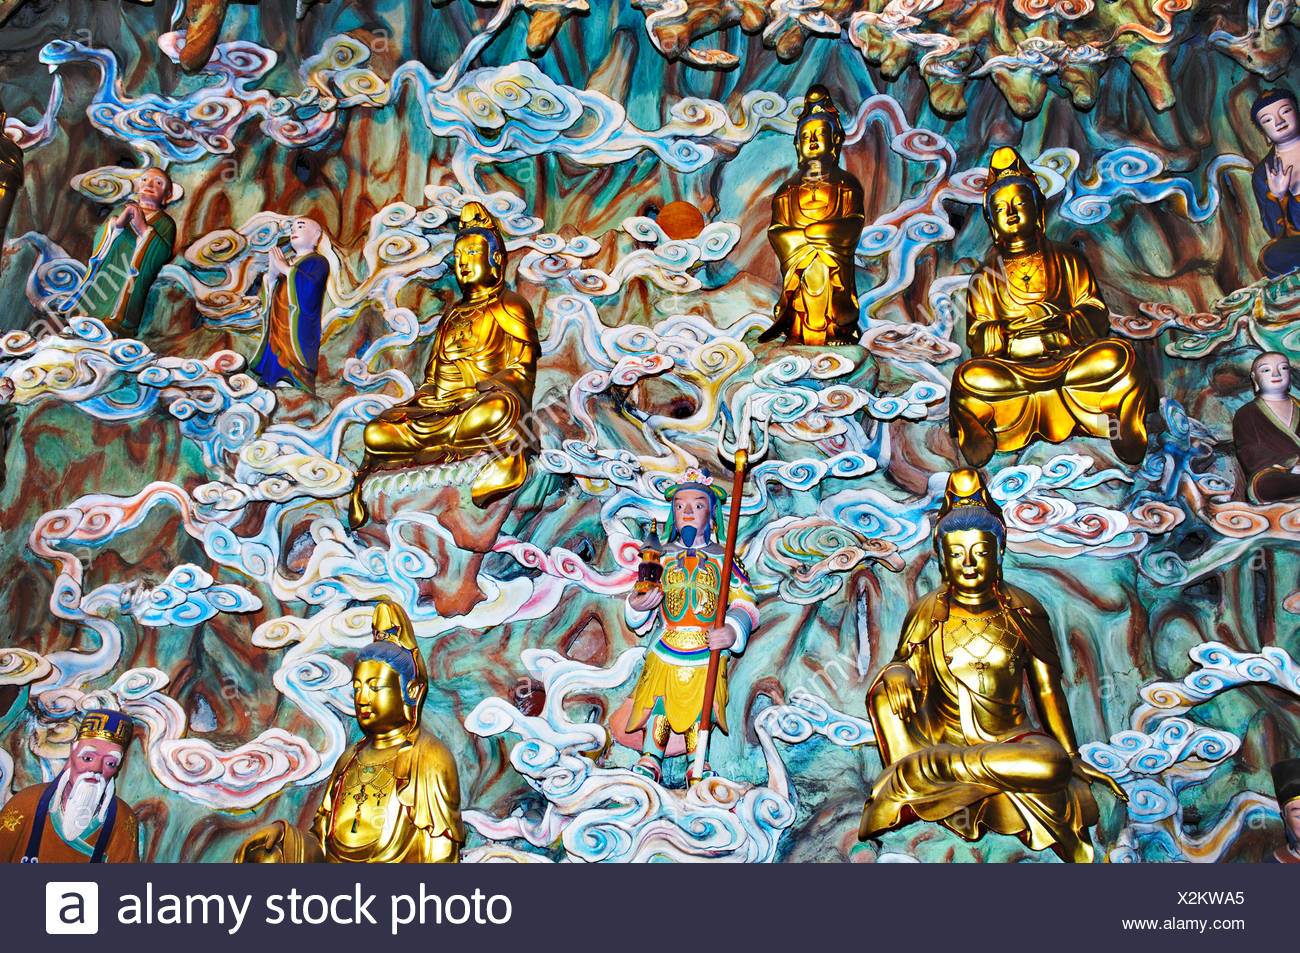 Figurines, gods' heaven, Longhua temple, Shanghai, China Stock Photo